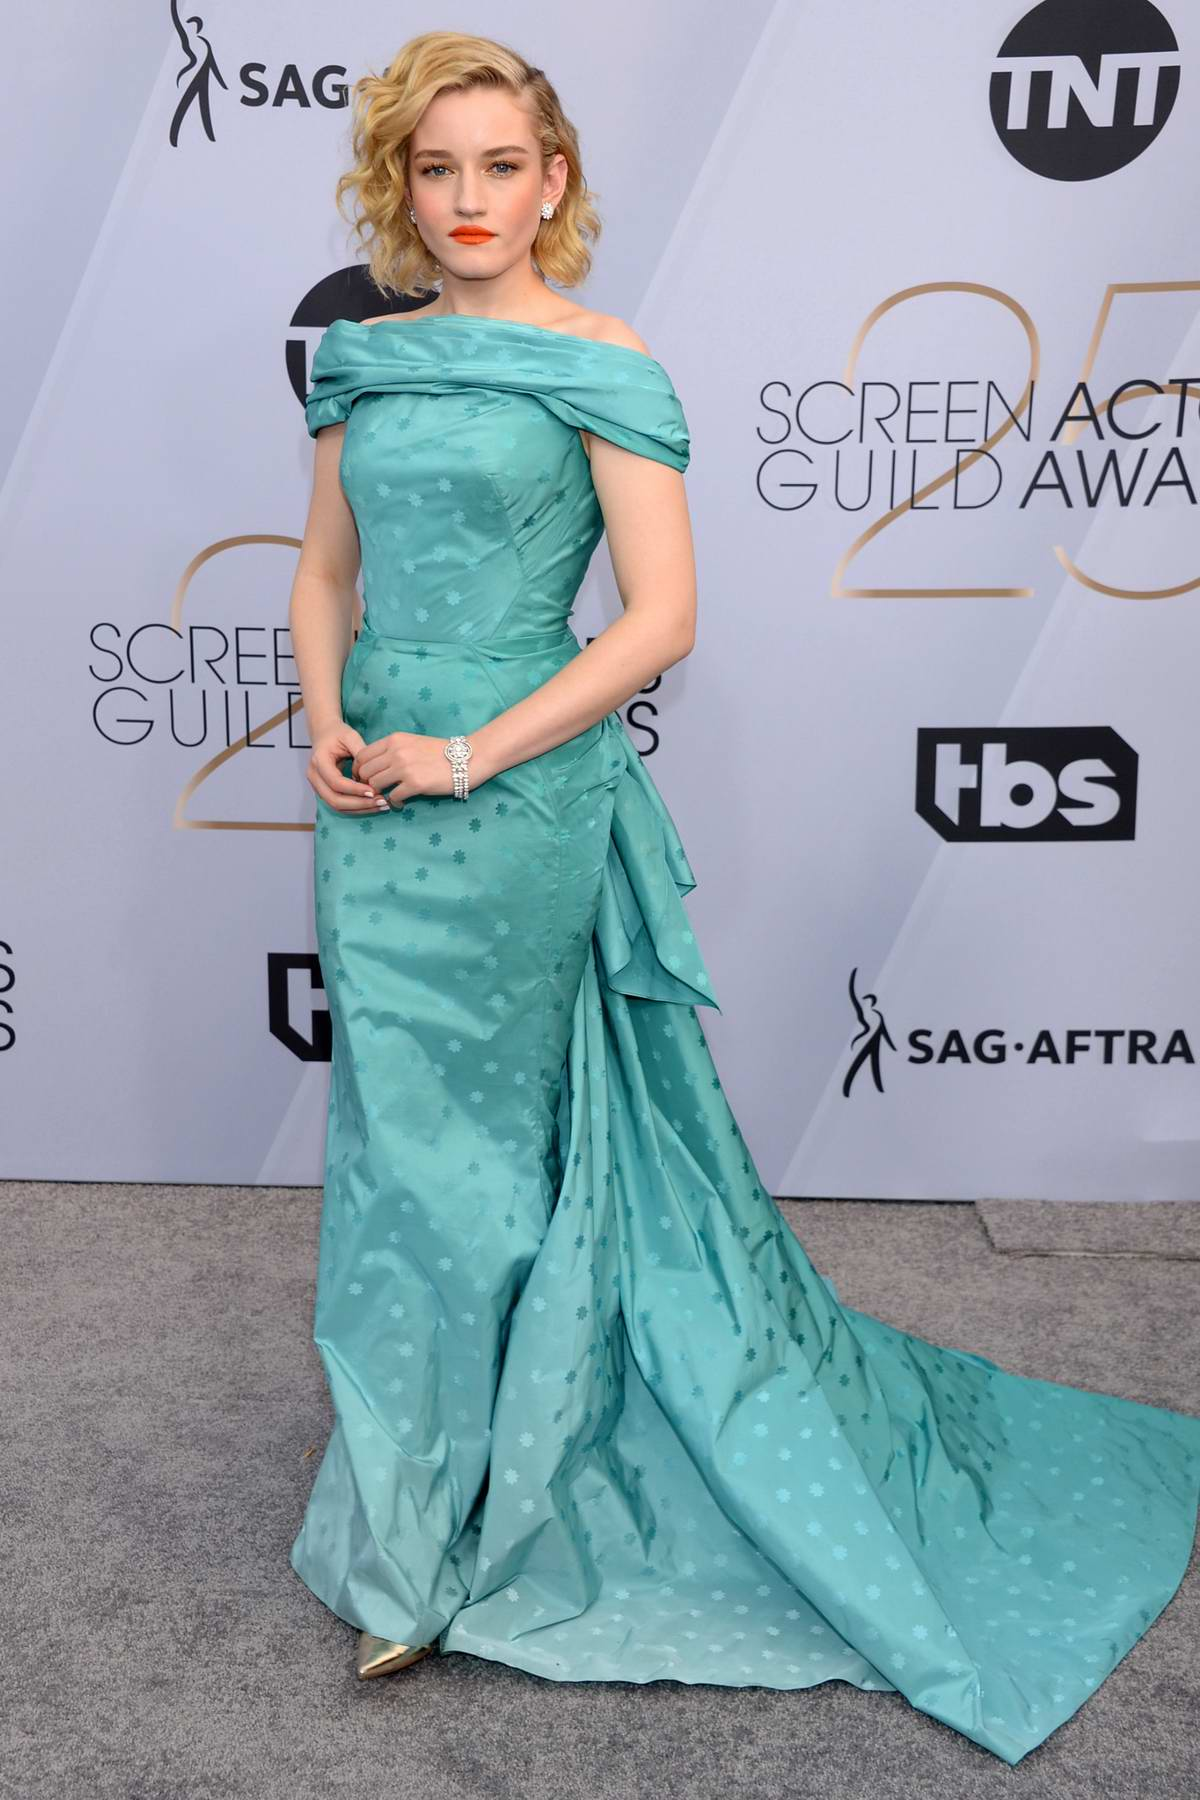 Julia Garner attends the 25th Annual Screen Actors Guild Awards (SAG 2019) at the Shrine Auditorium in Los Angeles